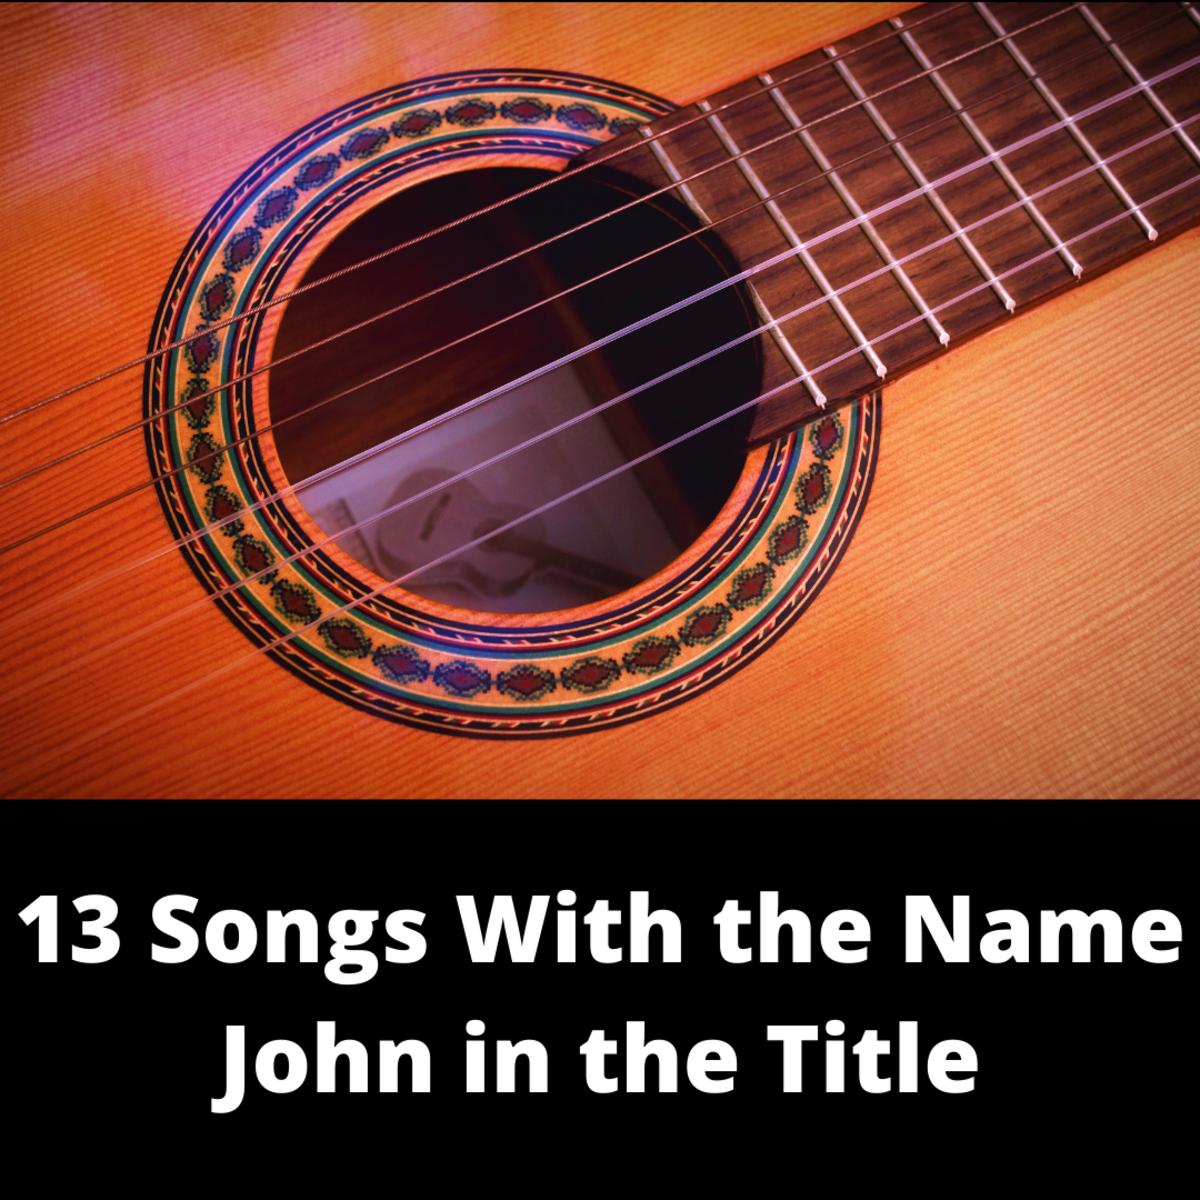 These classic songs are perfect for making a playlist of songs with the name John in the title.